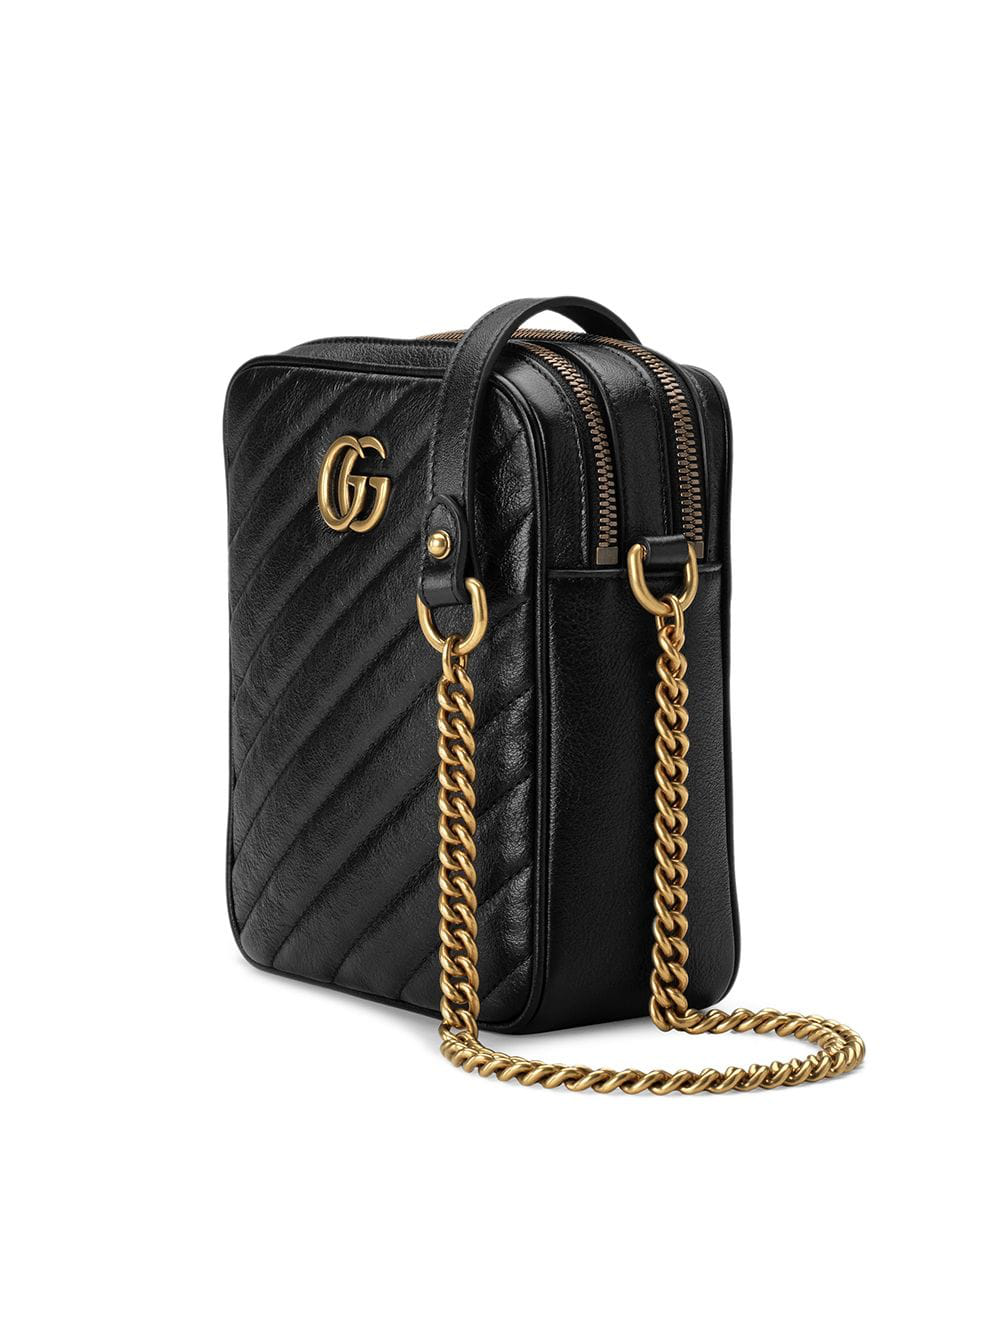 d806d115b Gucci Gg Marmont 2.0 MatelassÉ Leather Mini Backpack In 1000 Black ...